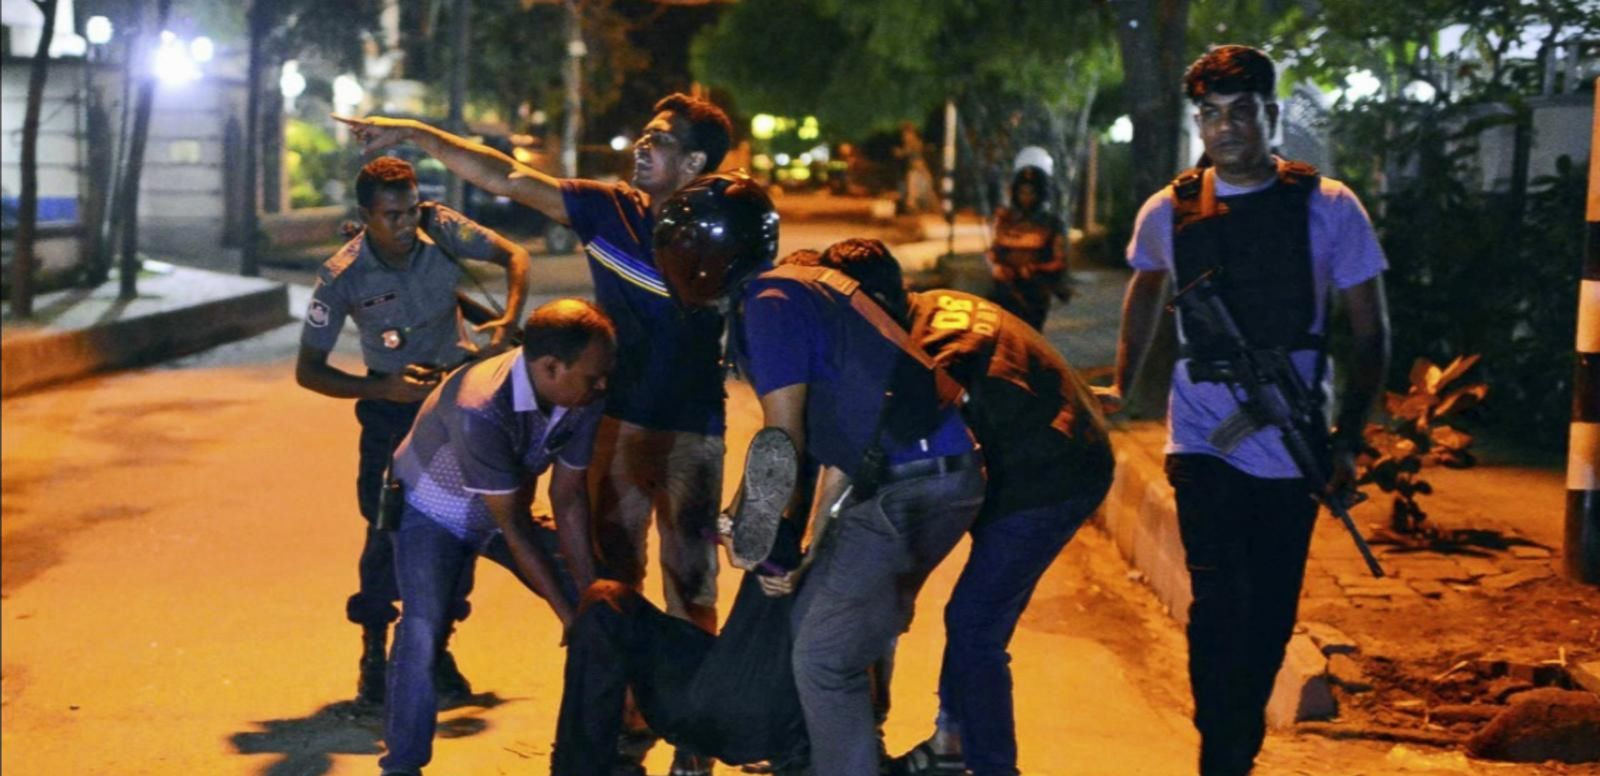 VIDEO: Gunman Hold at Least 20 Hostages in Bangladesh Cafe